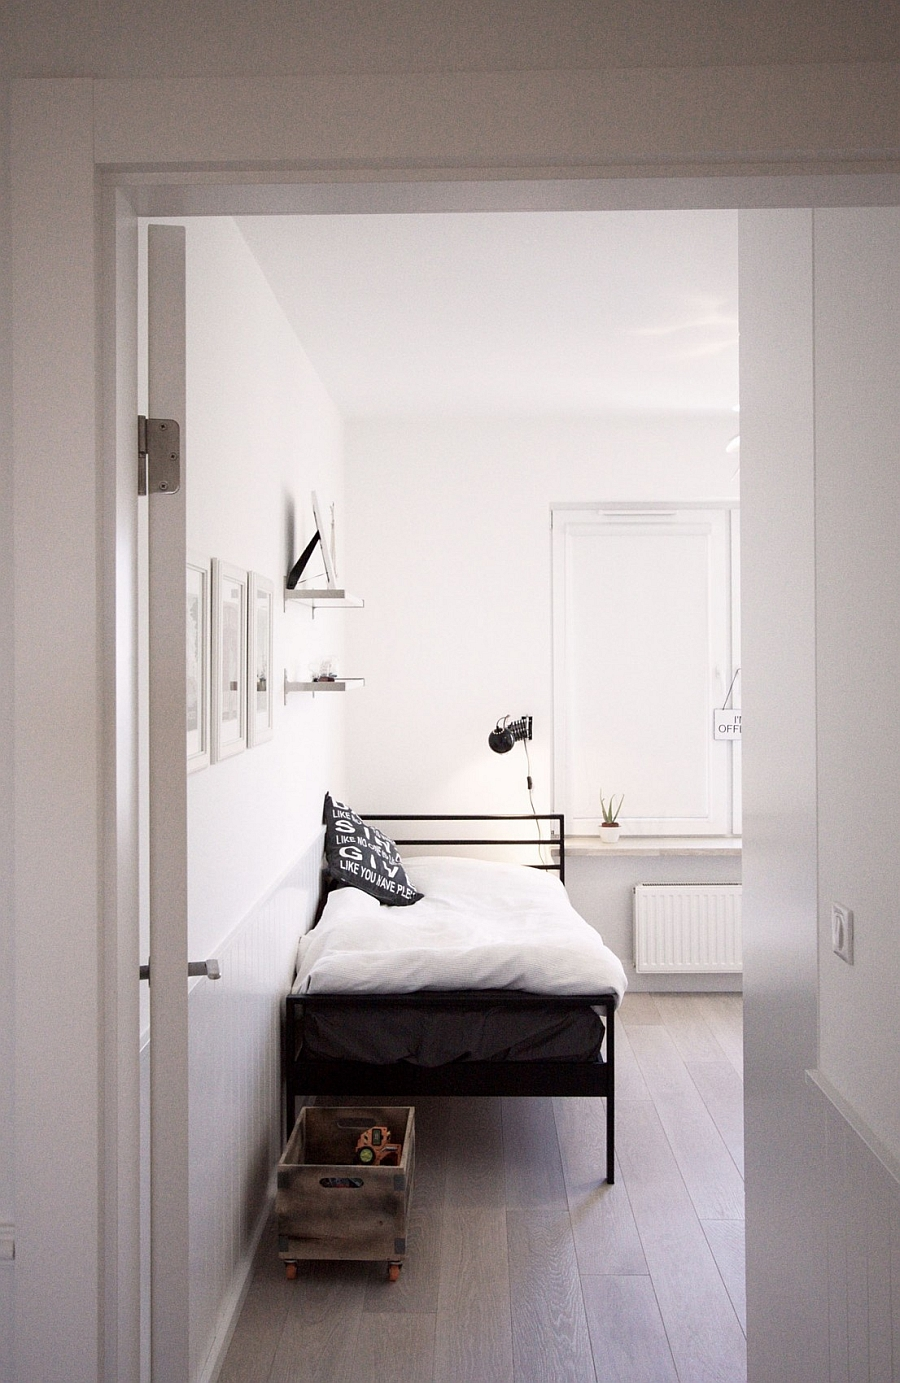 Bedrooms that borrow from both rustic and Scandinavian style